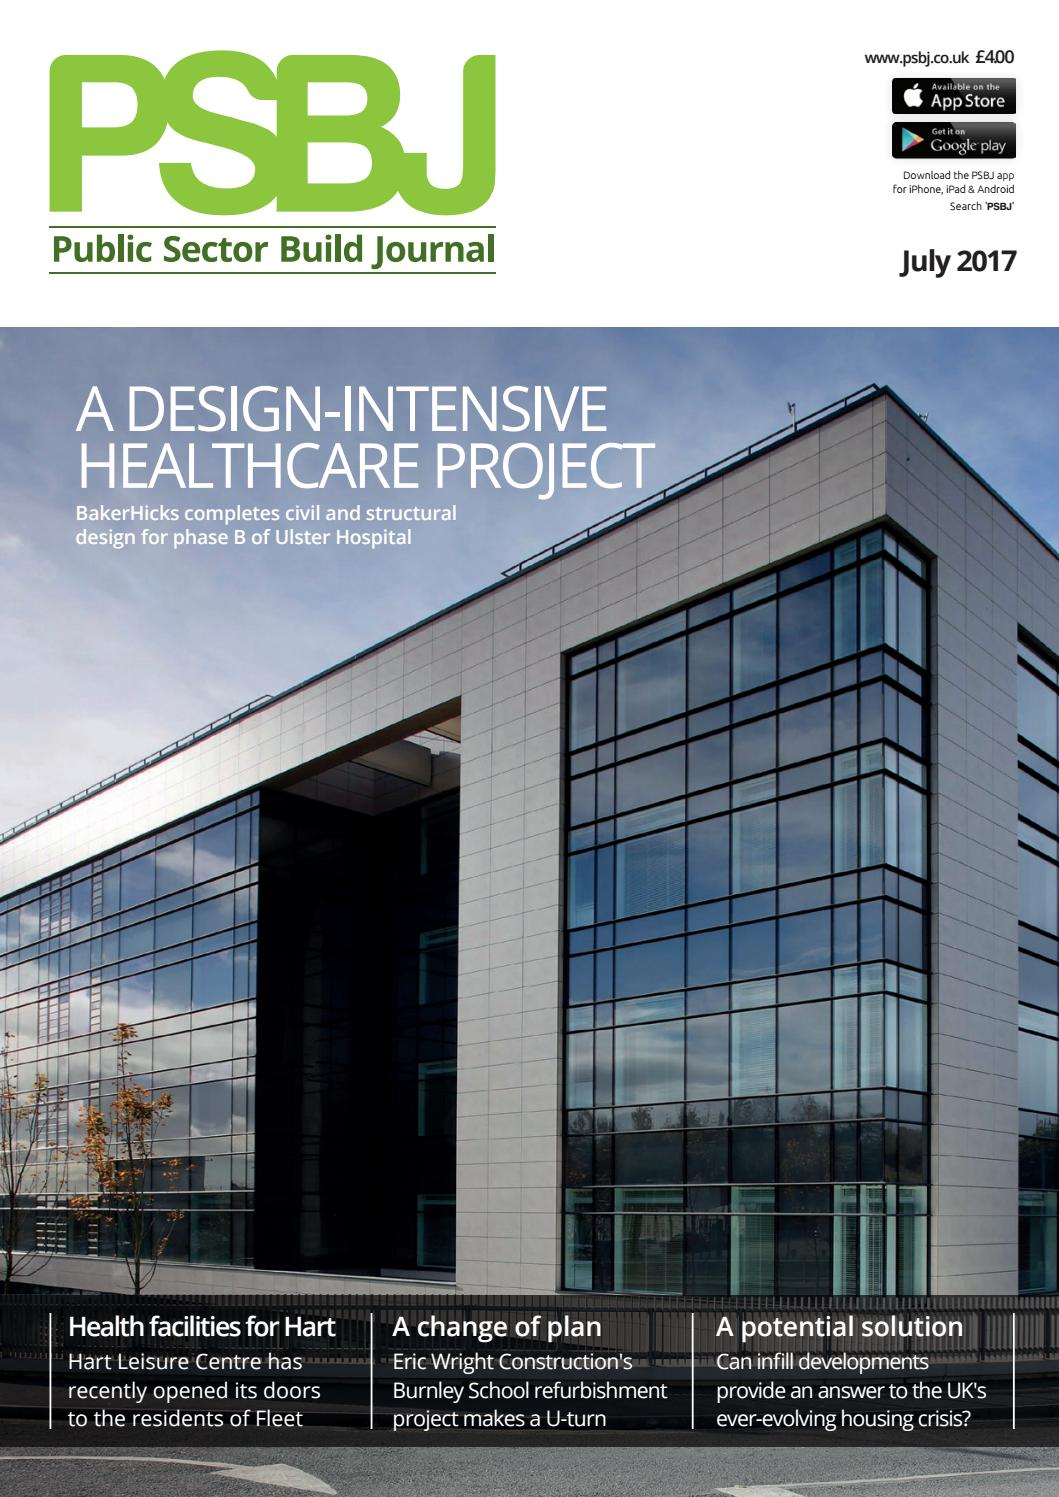 PSBJ July 2017 by Mixed Media - issuu